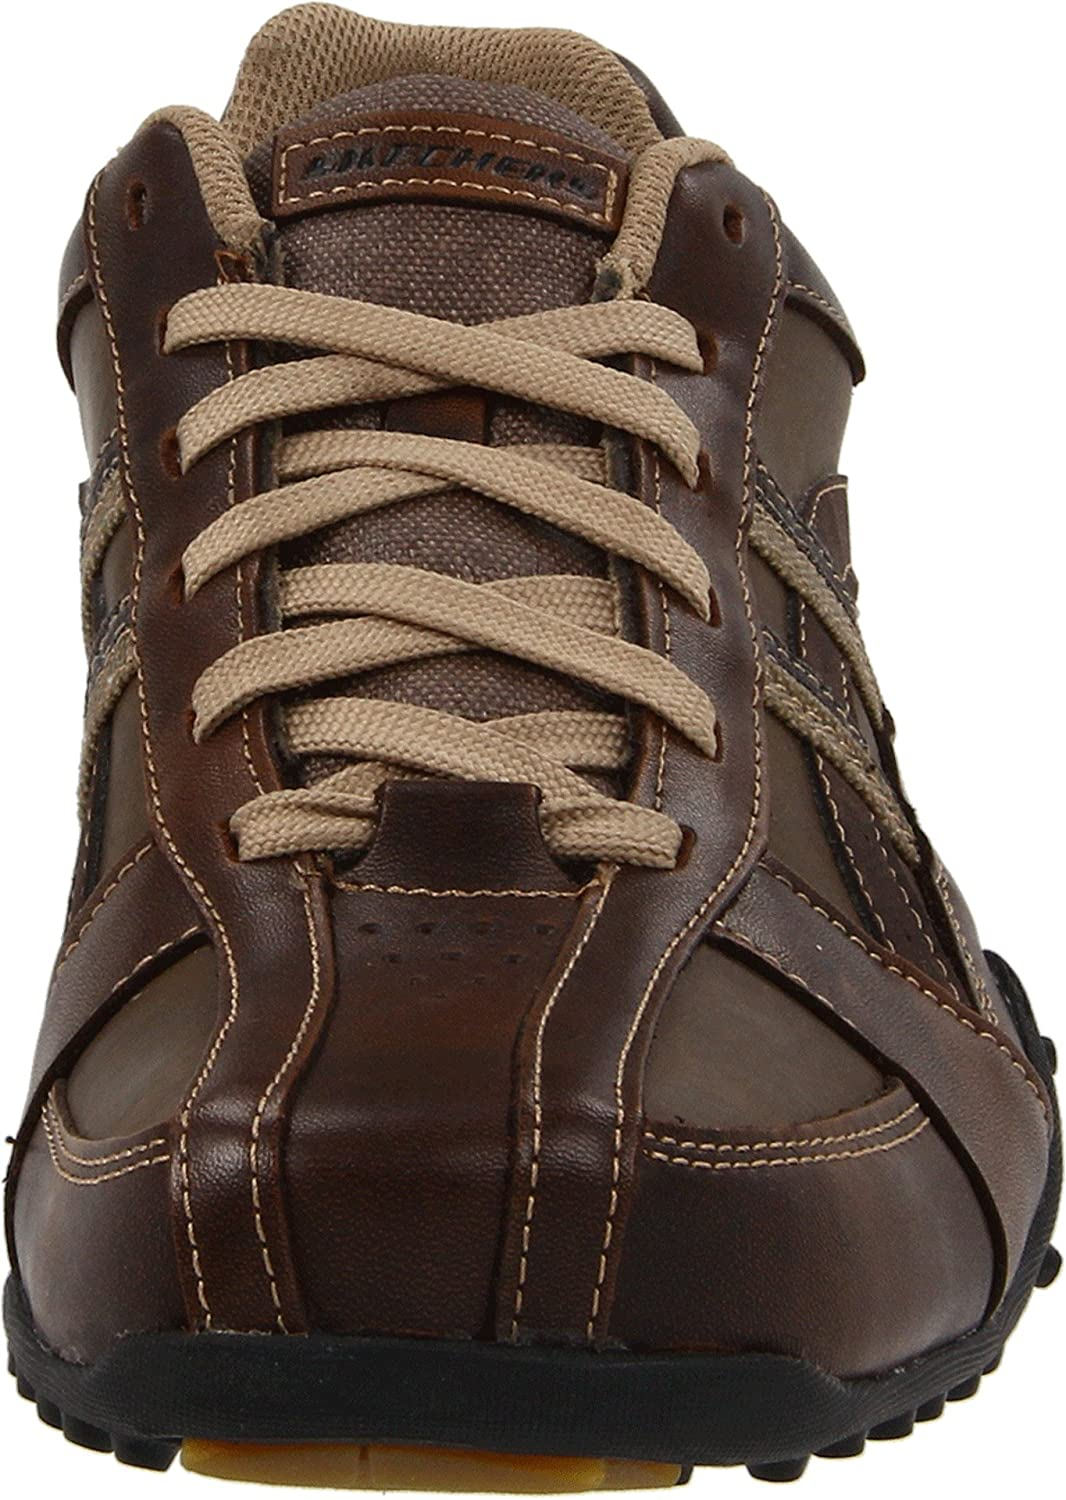 Sketchers Chaussures Pour Hommes En Cuir NGrEEs1iGT